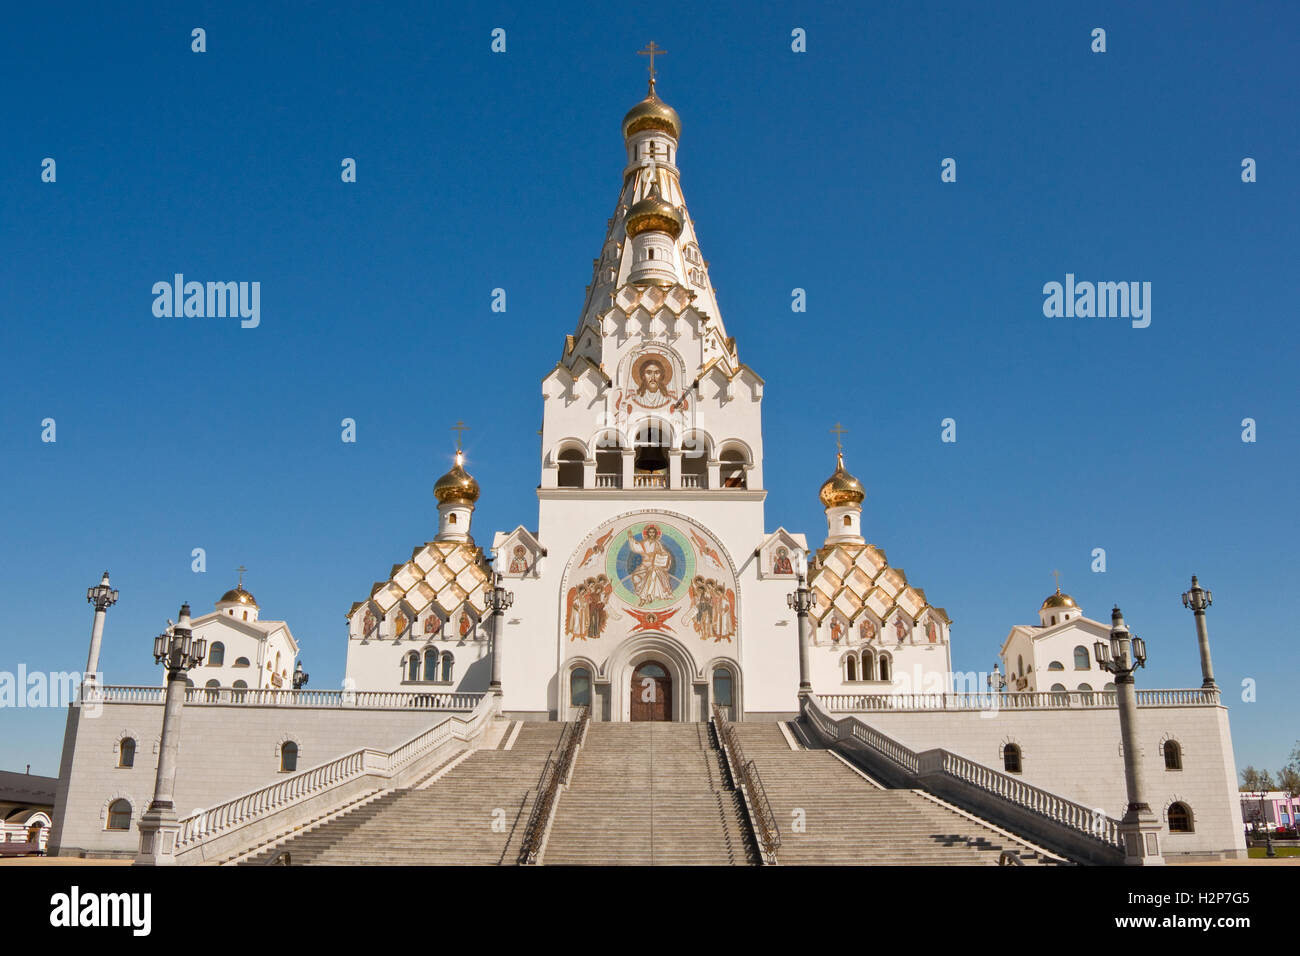 All saints church in Minsk, Belarus Stock Photo